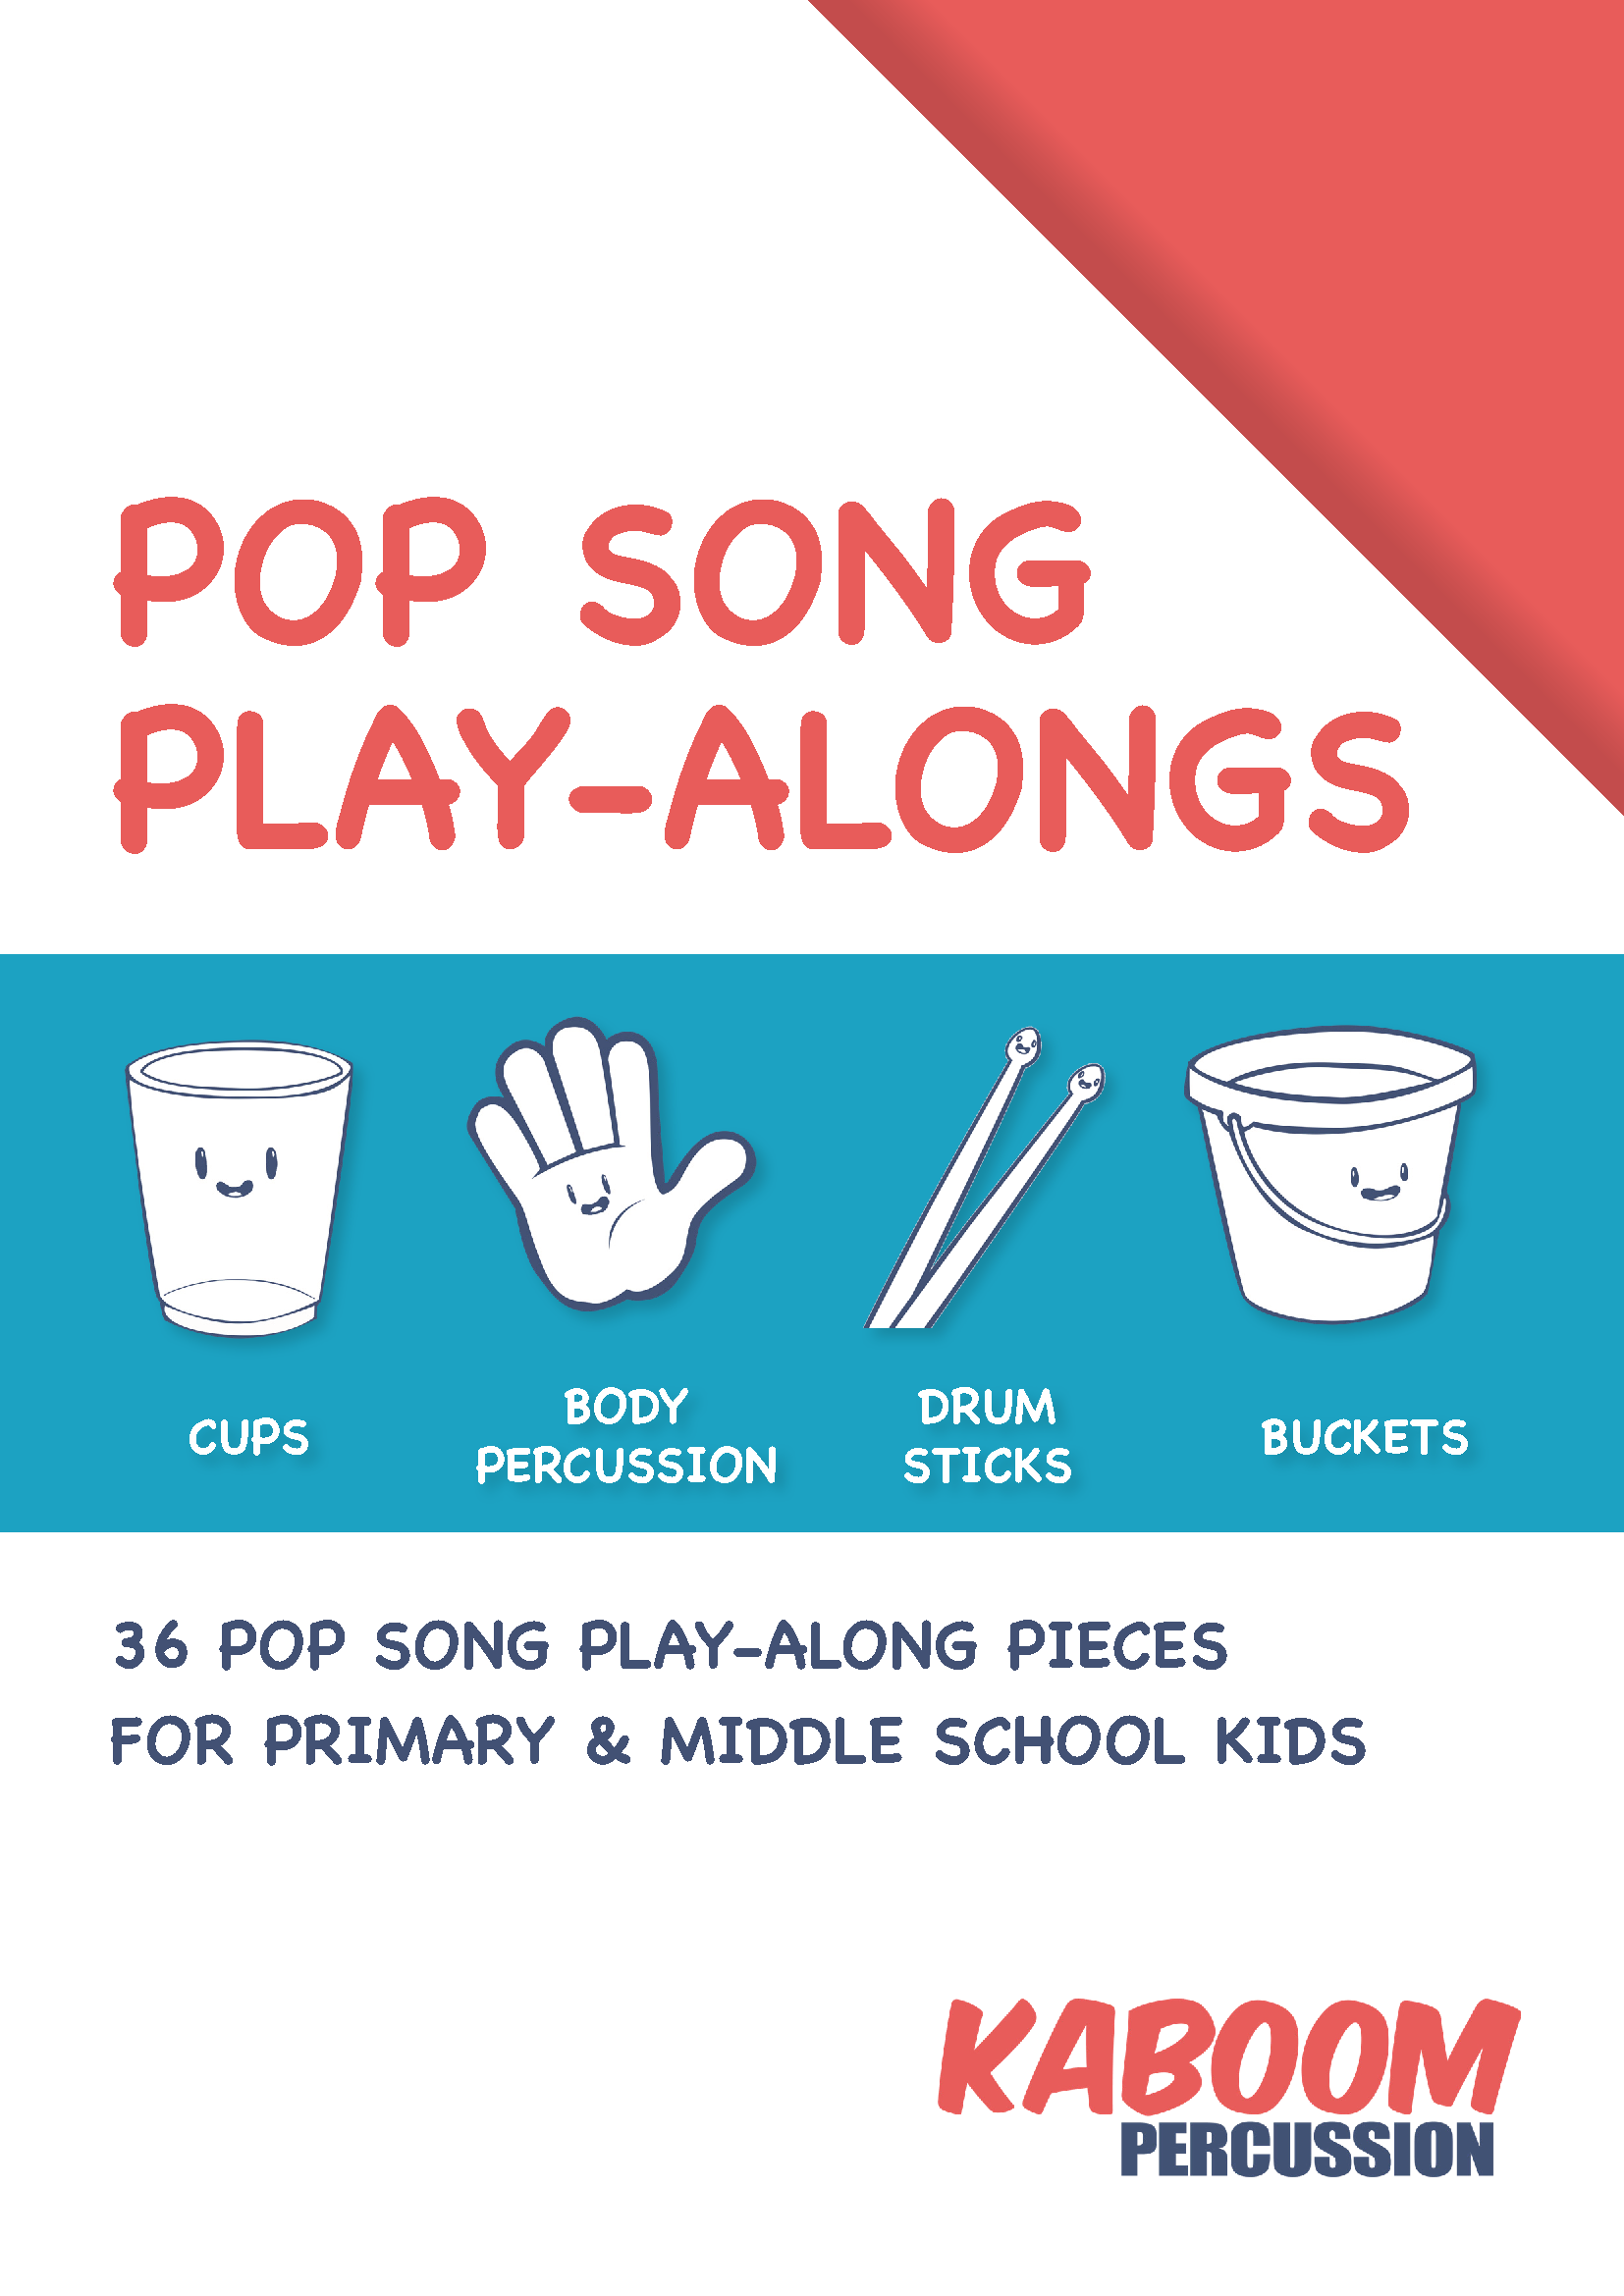 Pop Song Play Alongs Kaboompercussion